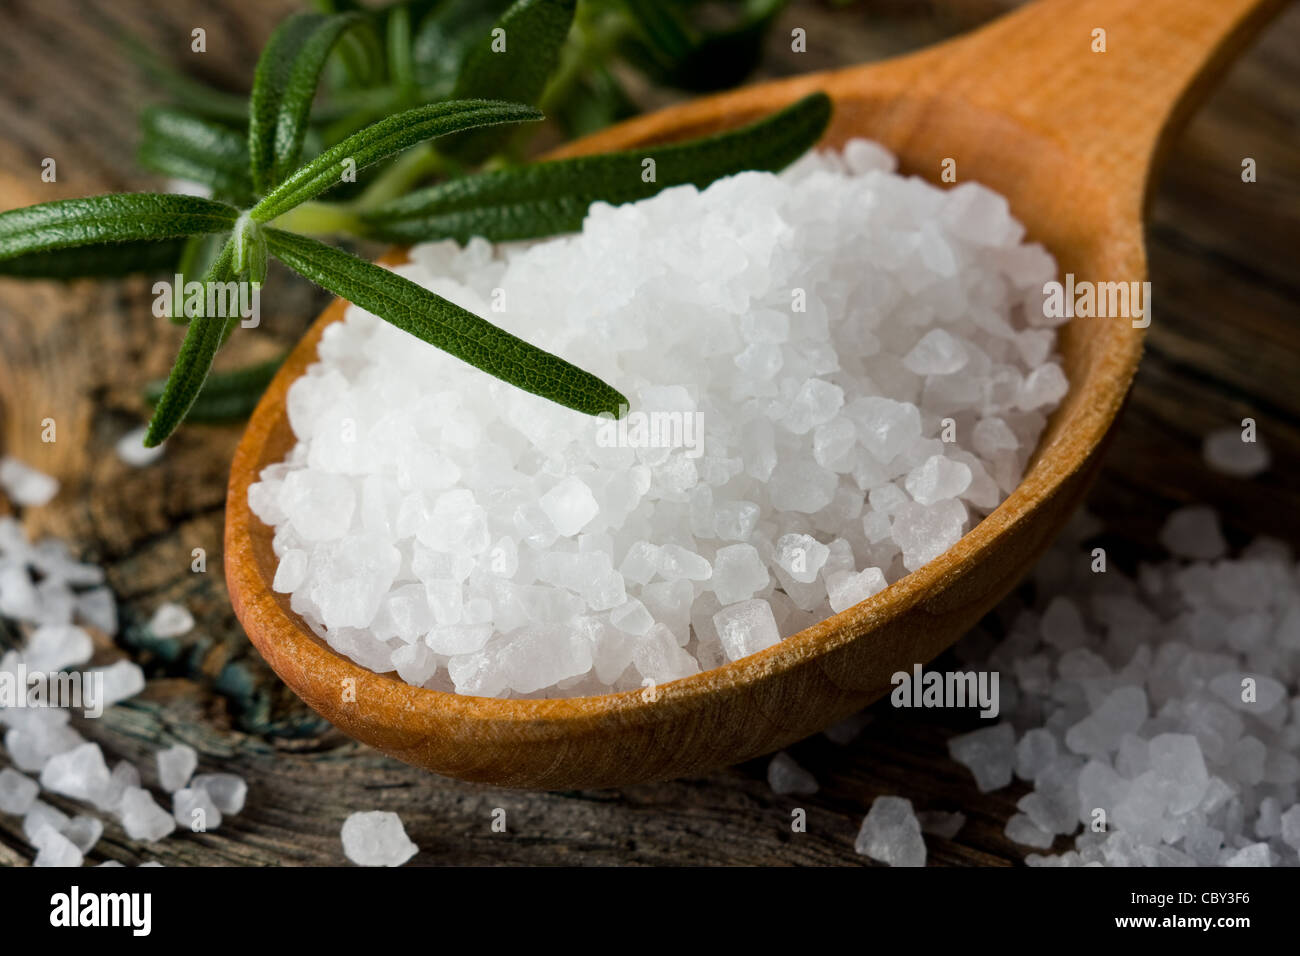 Rosemary and healthy sea salt on wooden spoon closeup - Stock Image